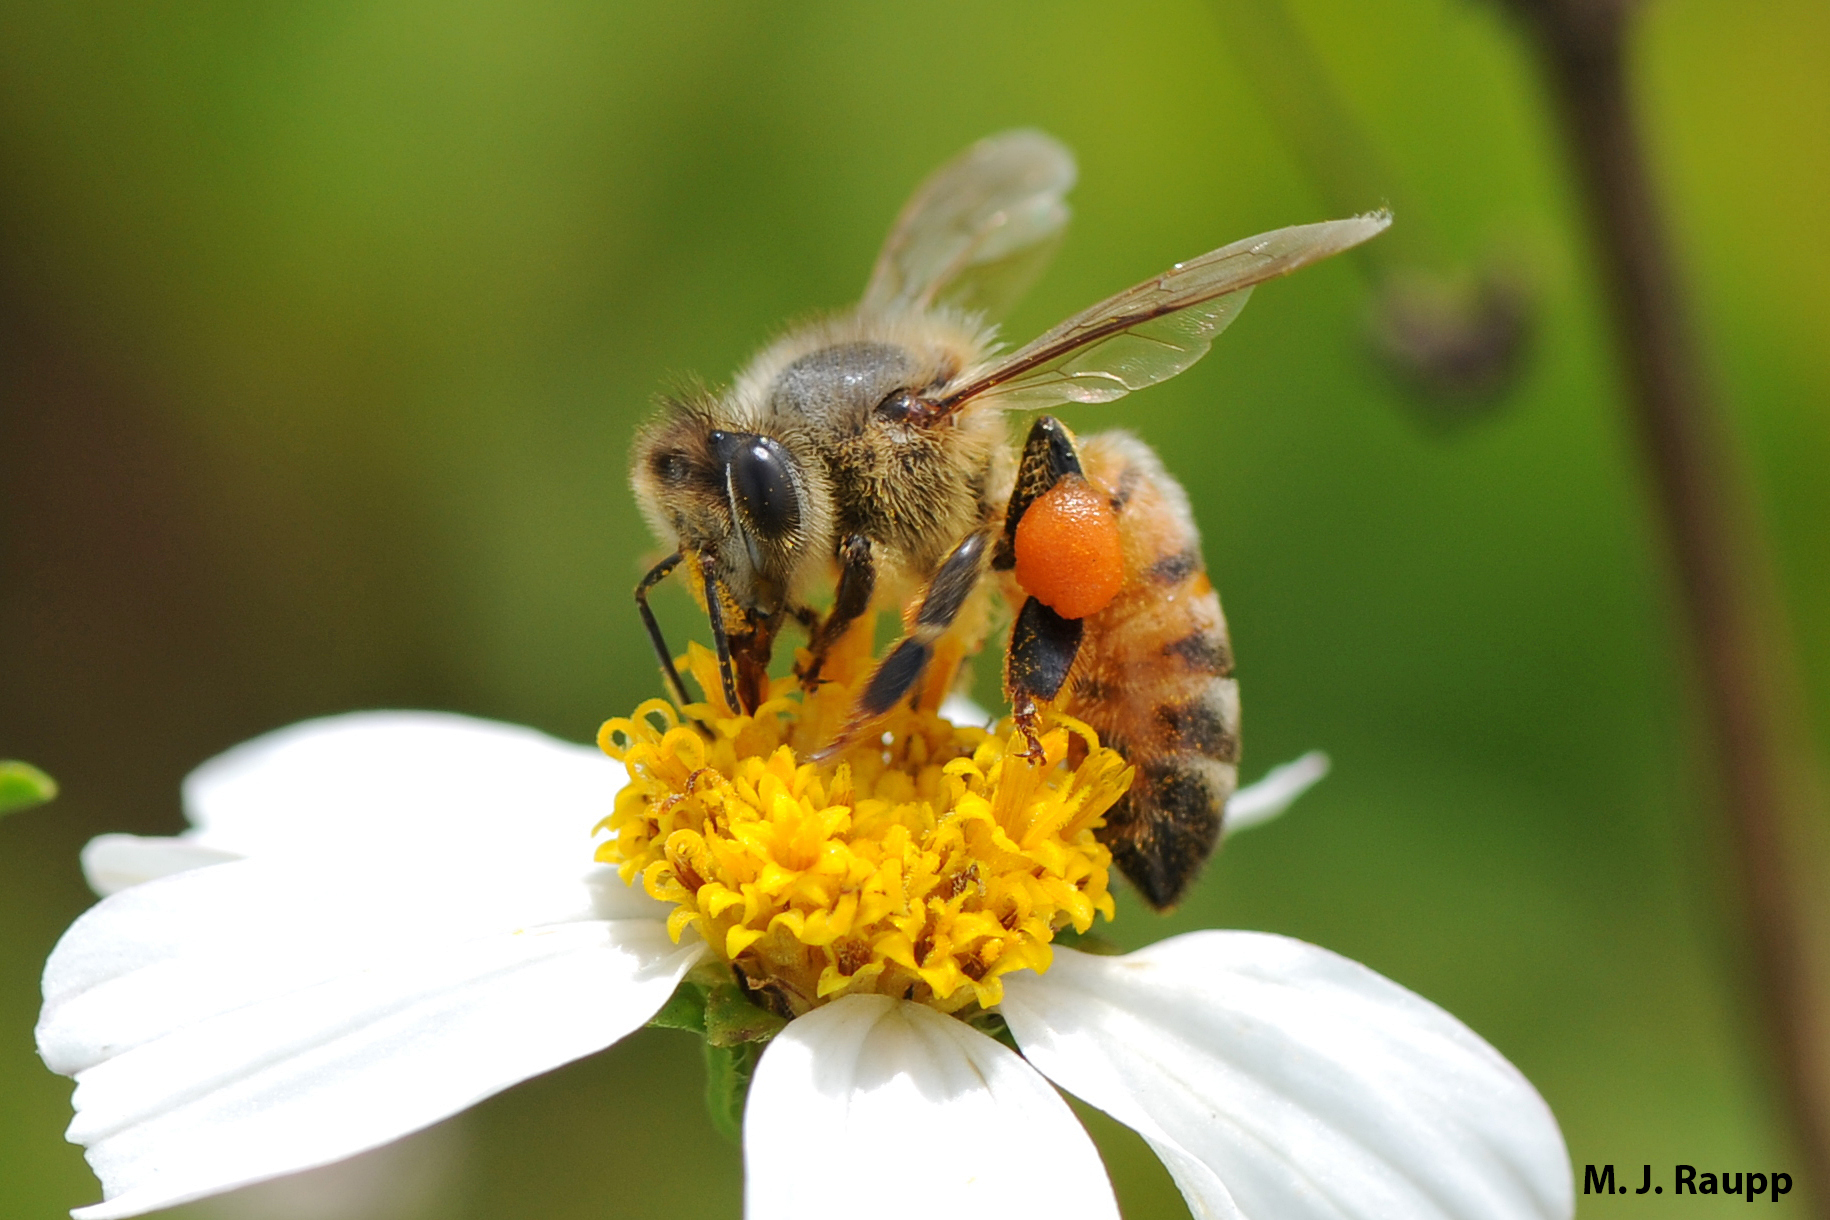 Honey bees and their allies are responsible for pollinating crops which comprise about every third bite of food we eat.